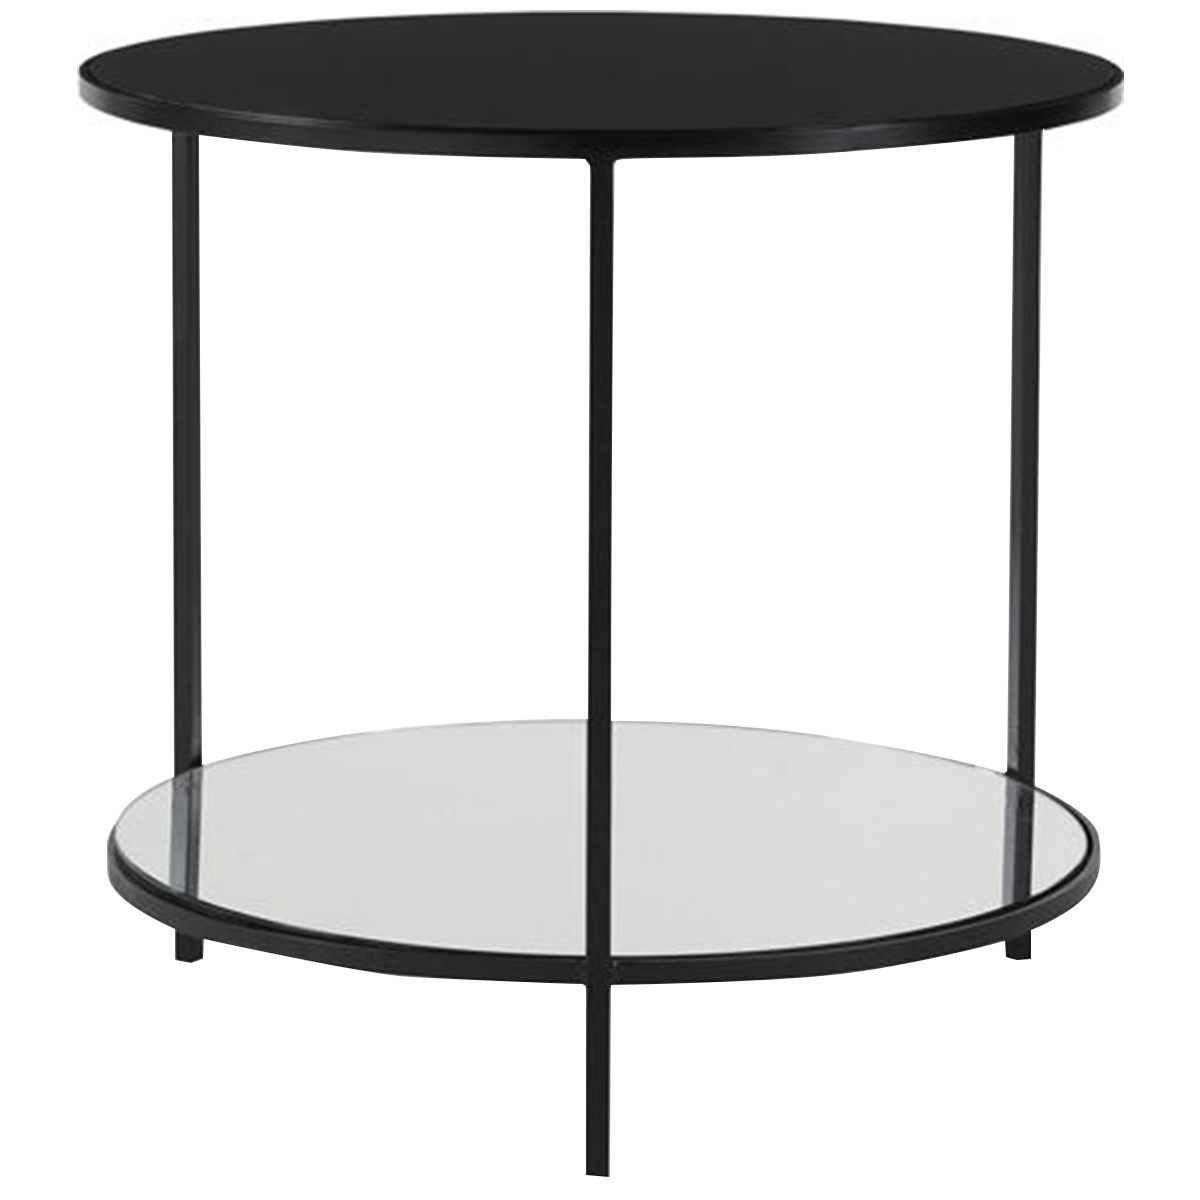 2019 Copper Grove Halesia Chocolate Bronze Round Coffee Tables With Regard To Black And Glass End Tables (View 14 of 20)